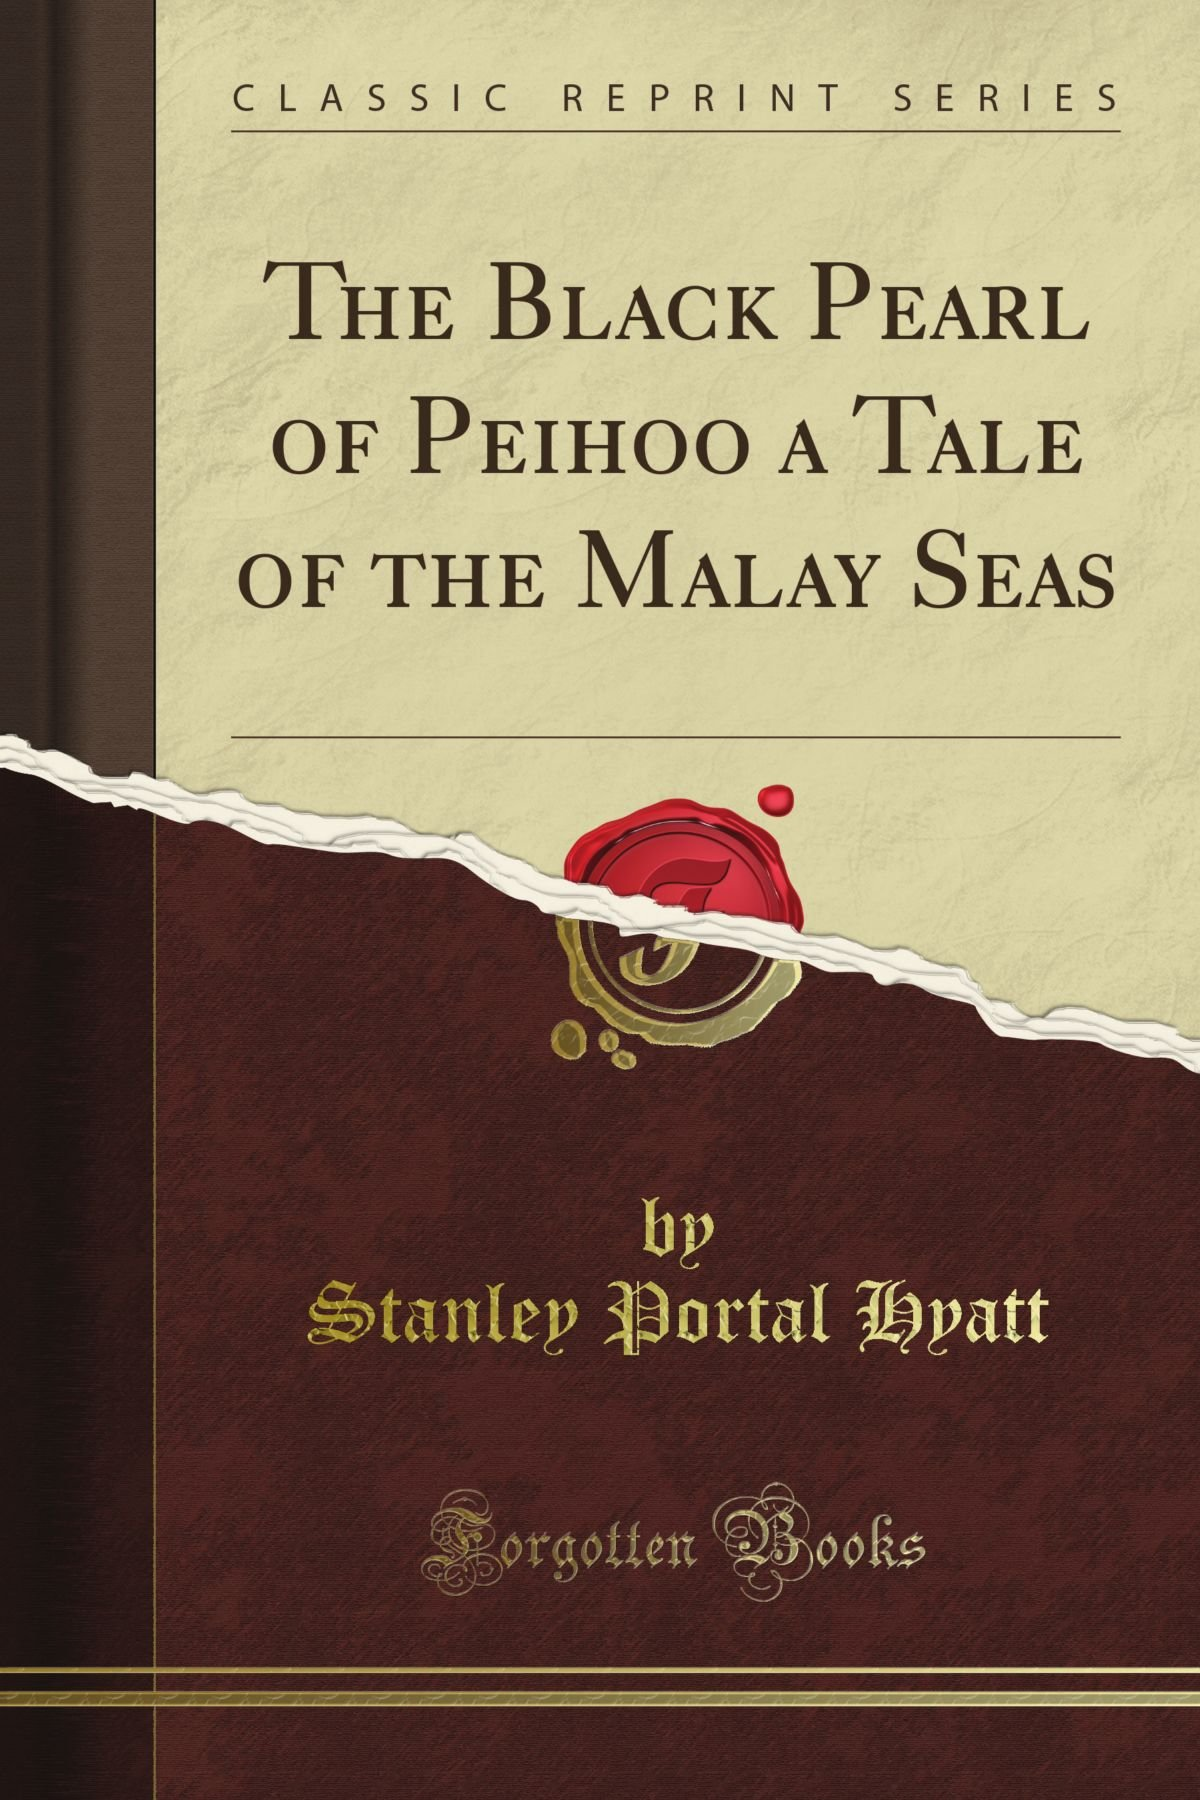 Amazon.com: The Black Pearl of Peihoo a Tale of the Malay Seas ...